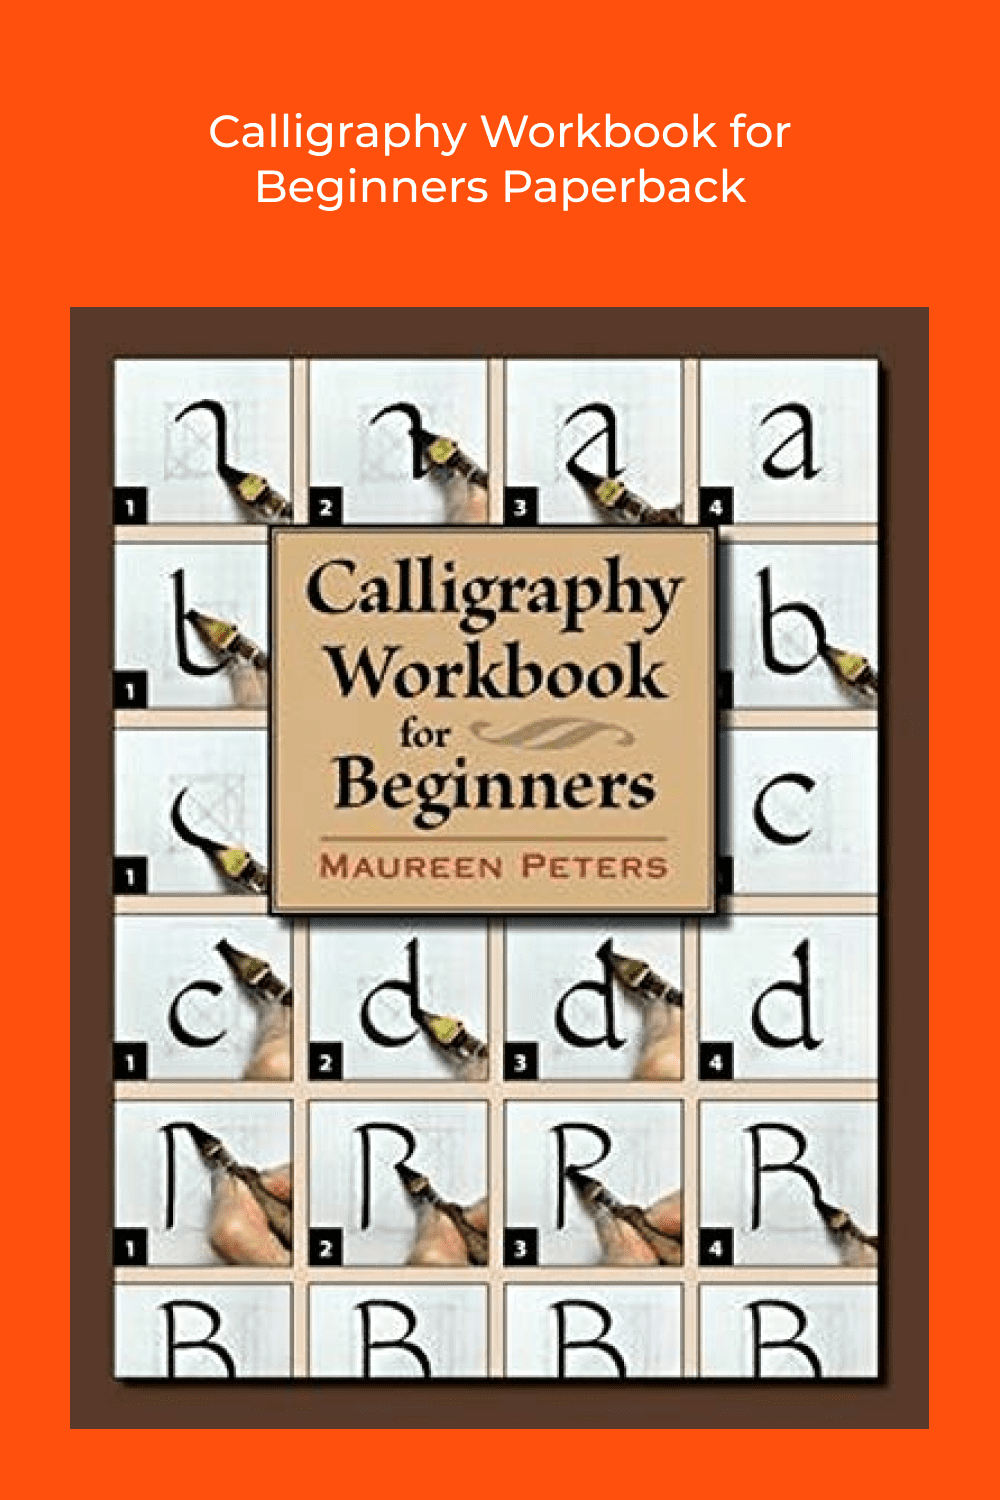 A basic, how-to book for beginners featuring 5 popular fonts or hands, Italic, Uncial, Foundational, Gothic, and Casual Pointed Pen, shown in step-by-step detail.